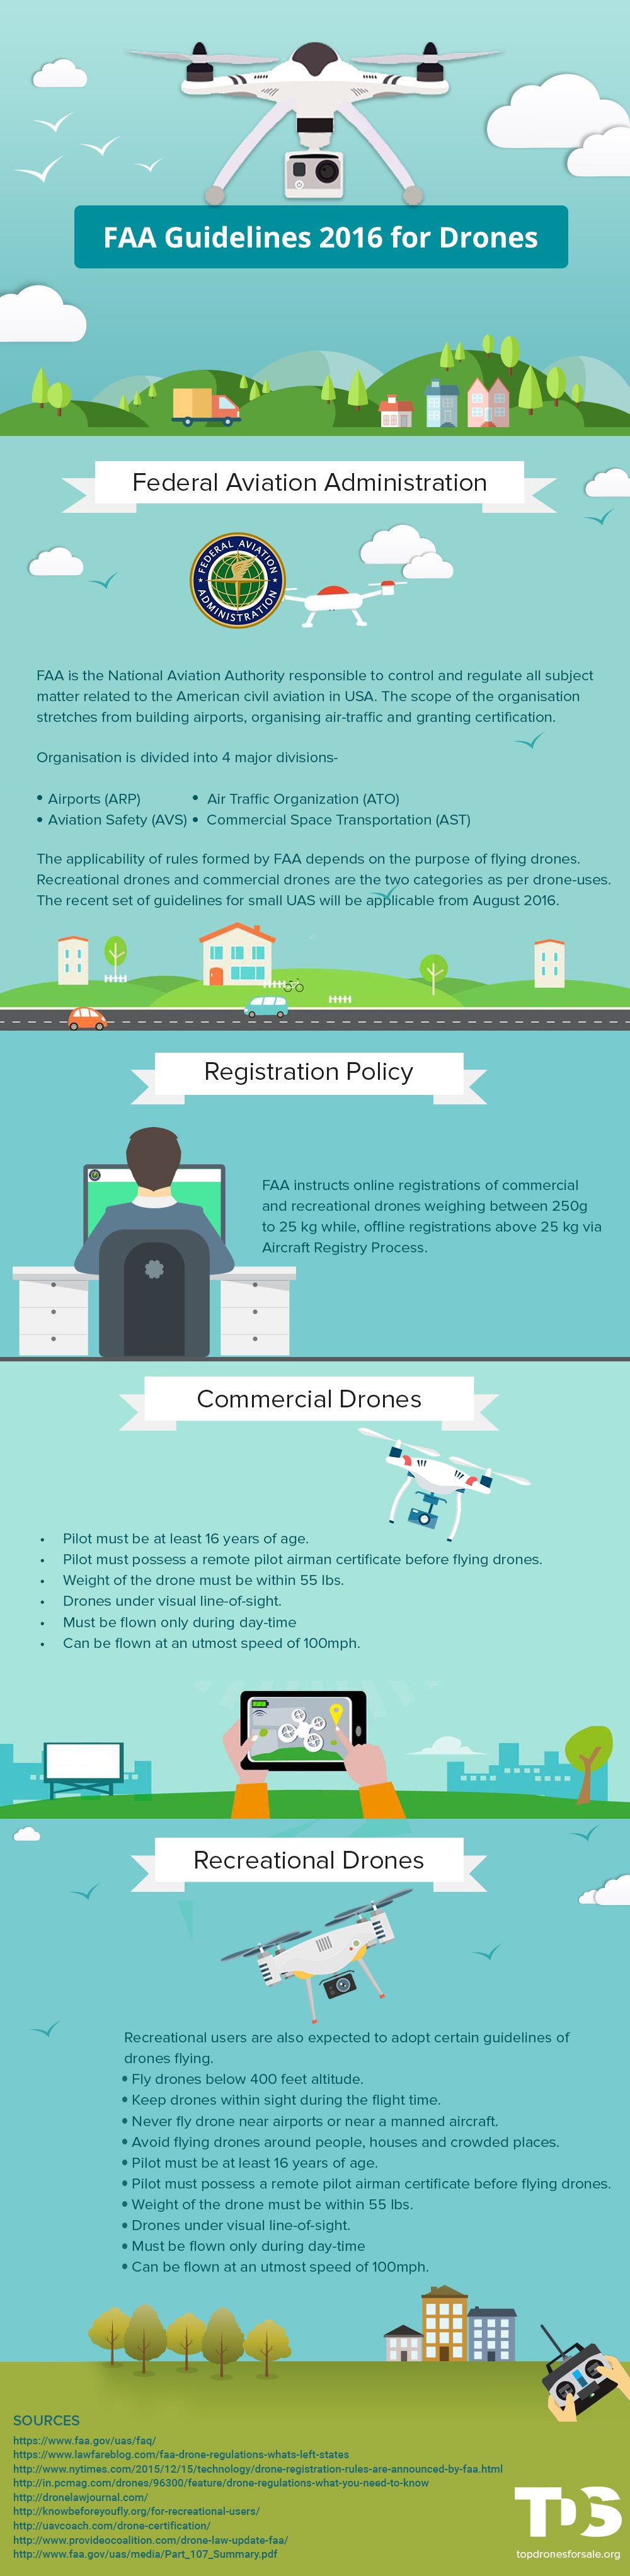 FAA guidelines for Drones